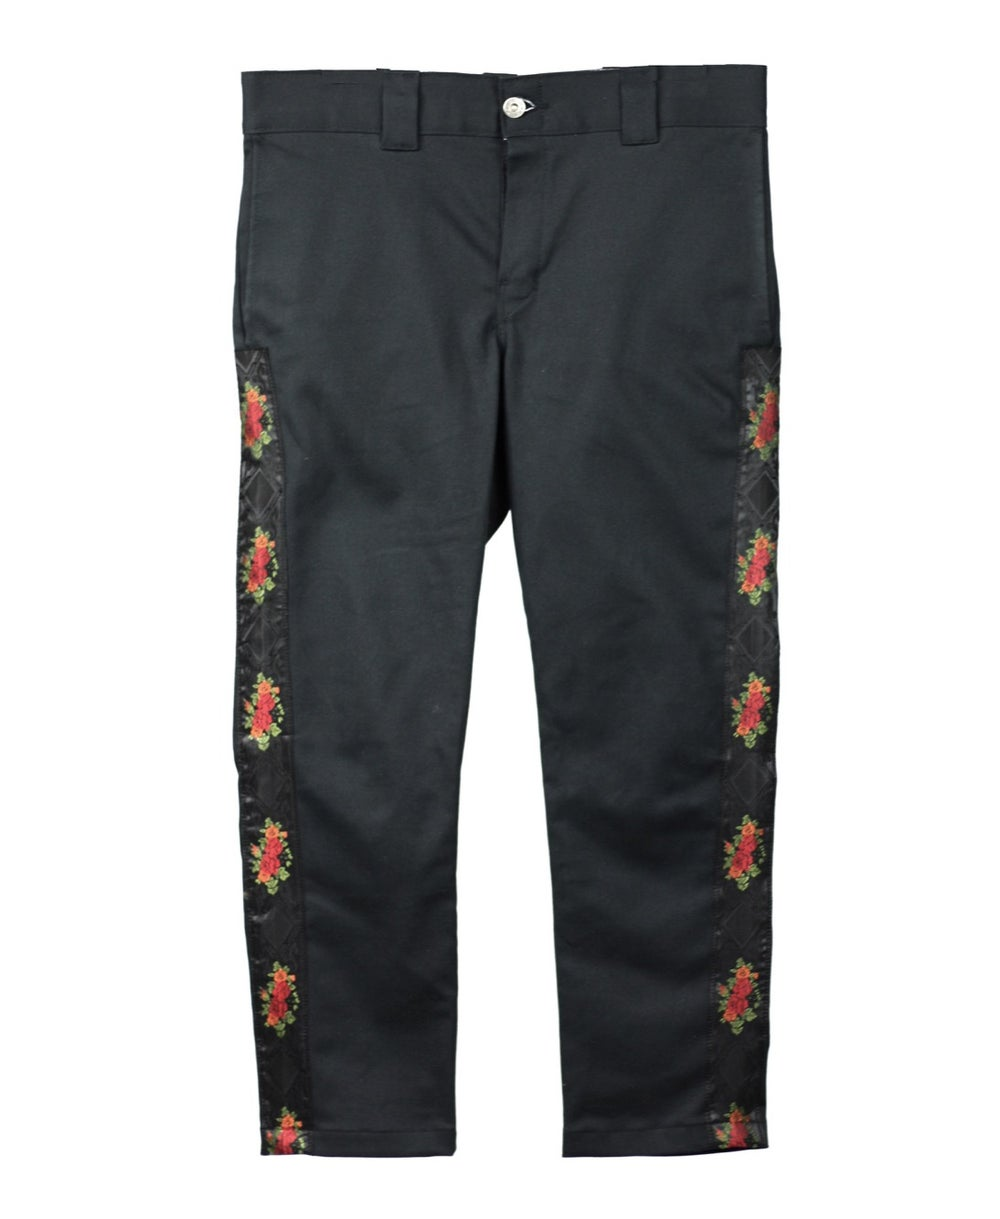 Image of FUNERAL PANTS